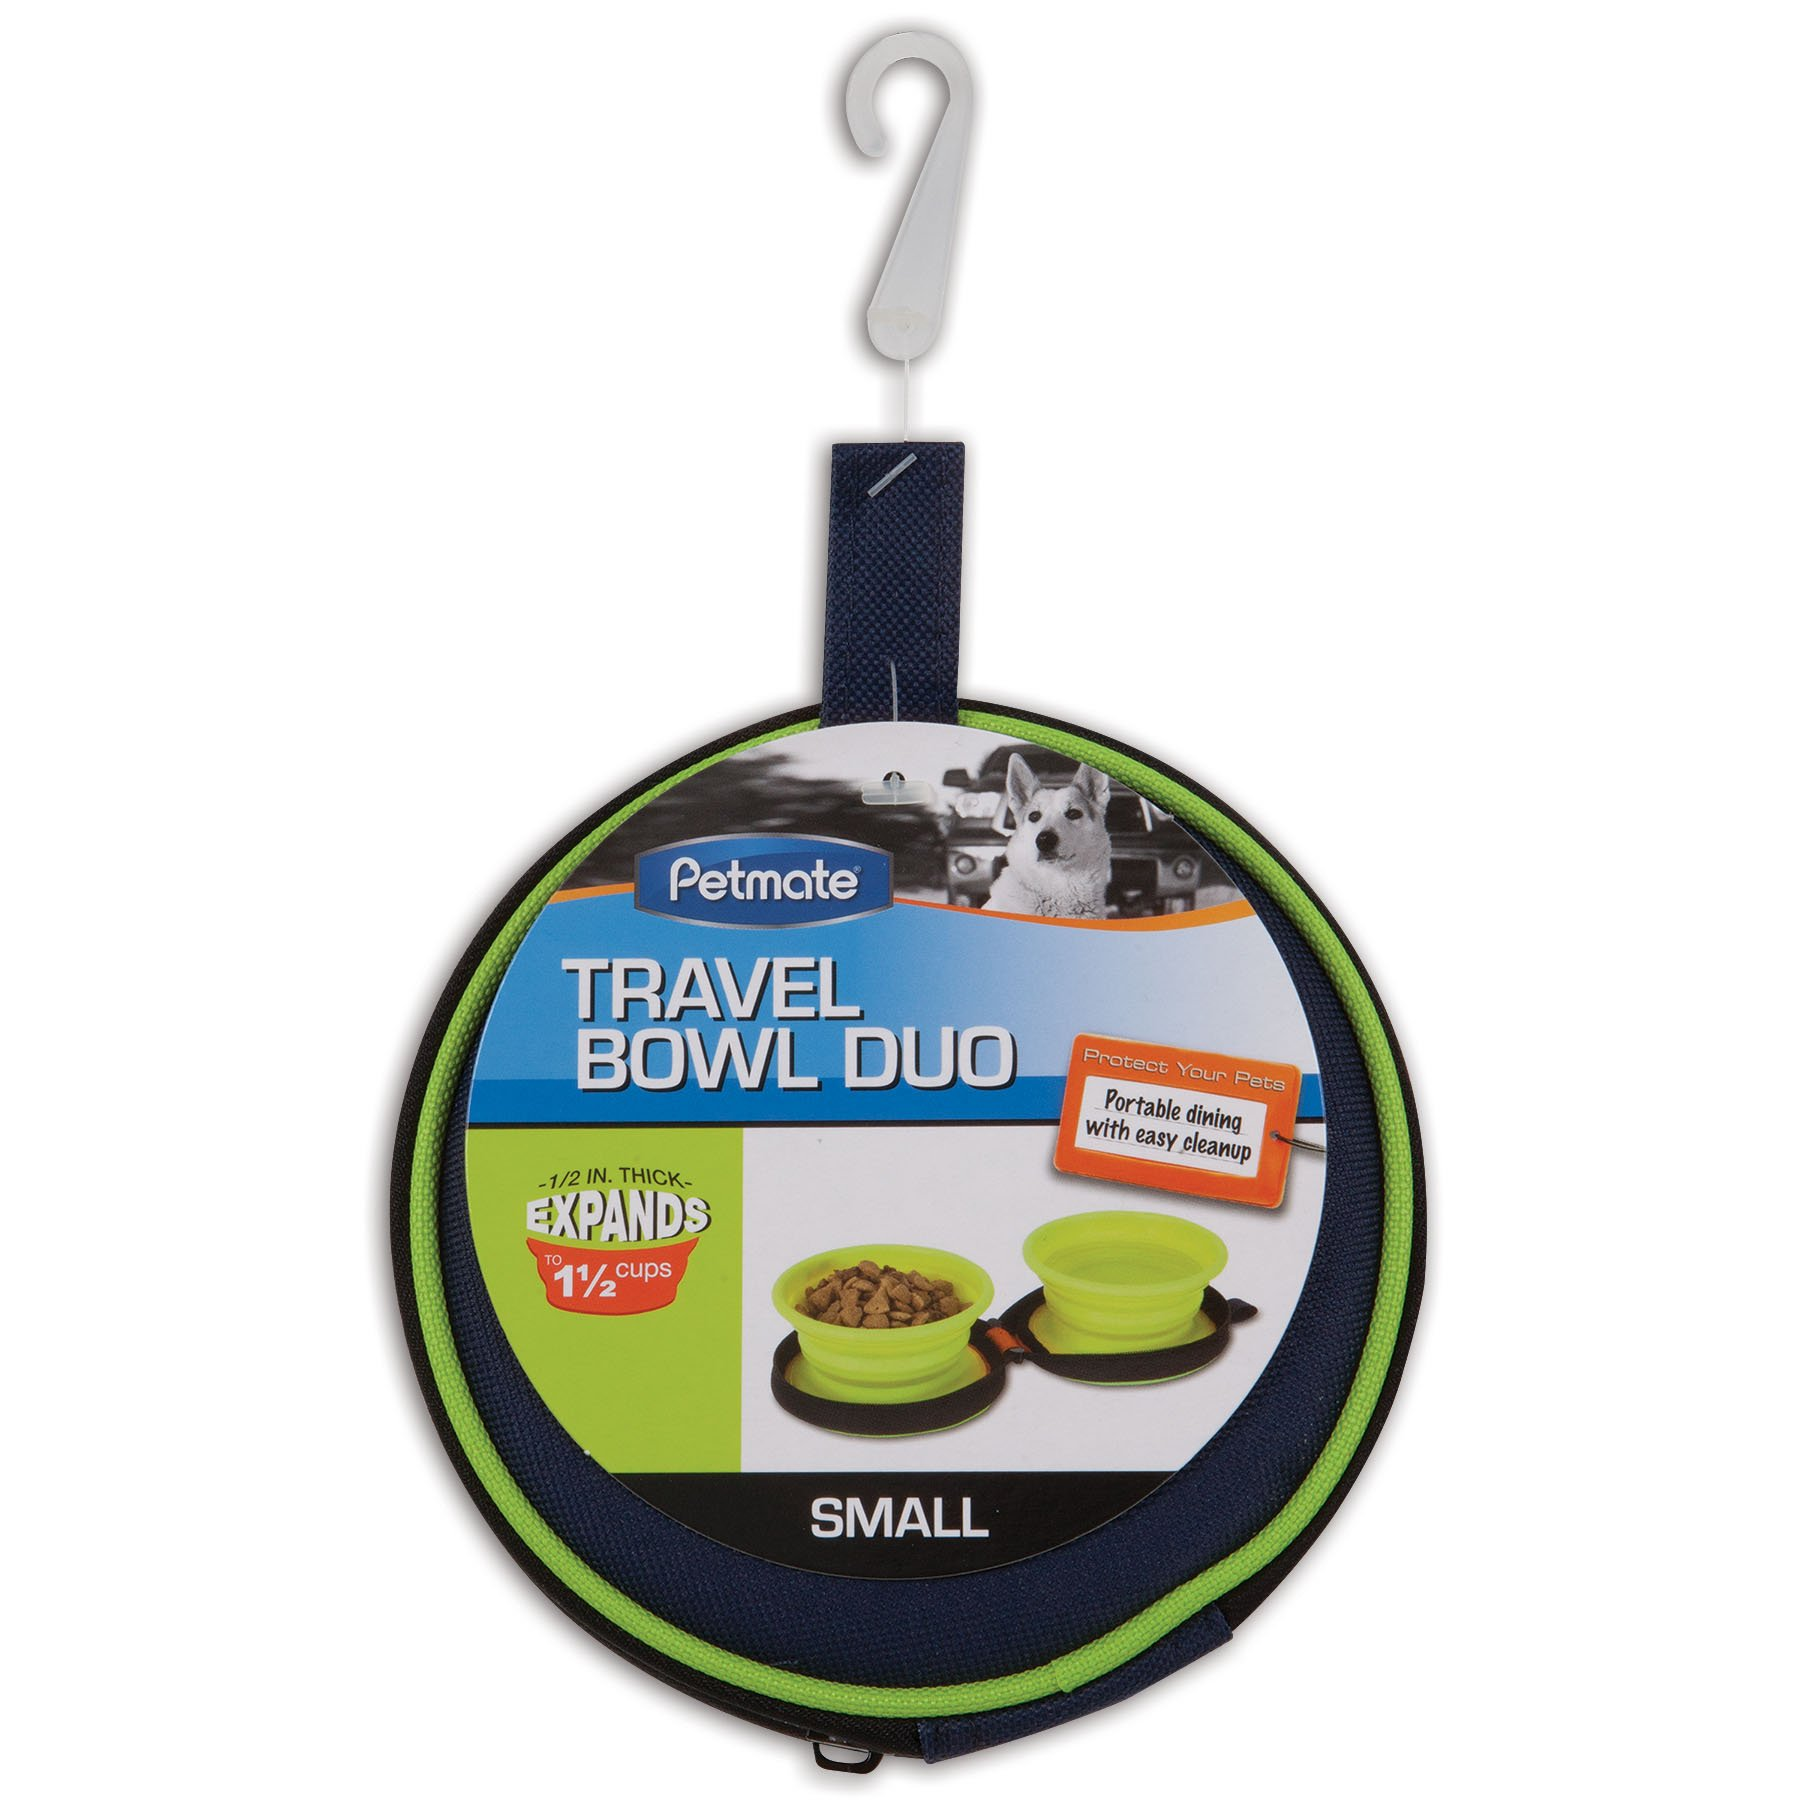 Petmate 3-Cup Silicone Duo Travel Bowl by Petmate